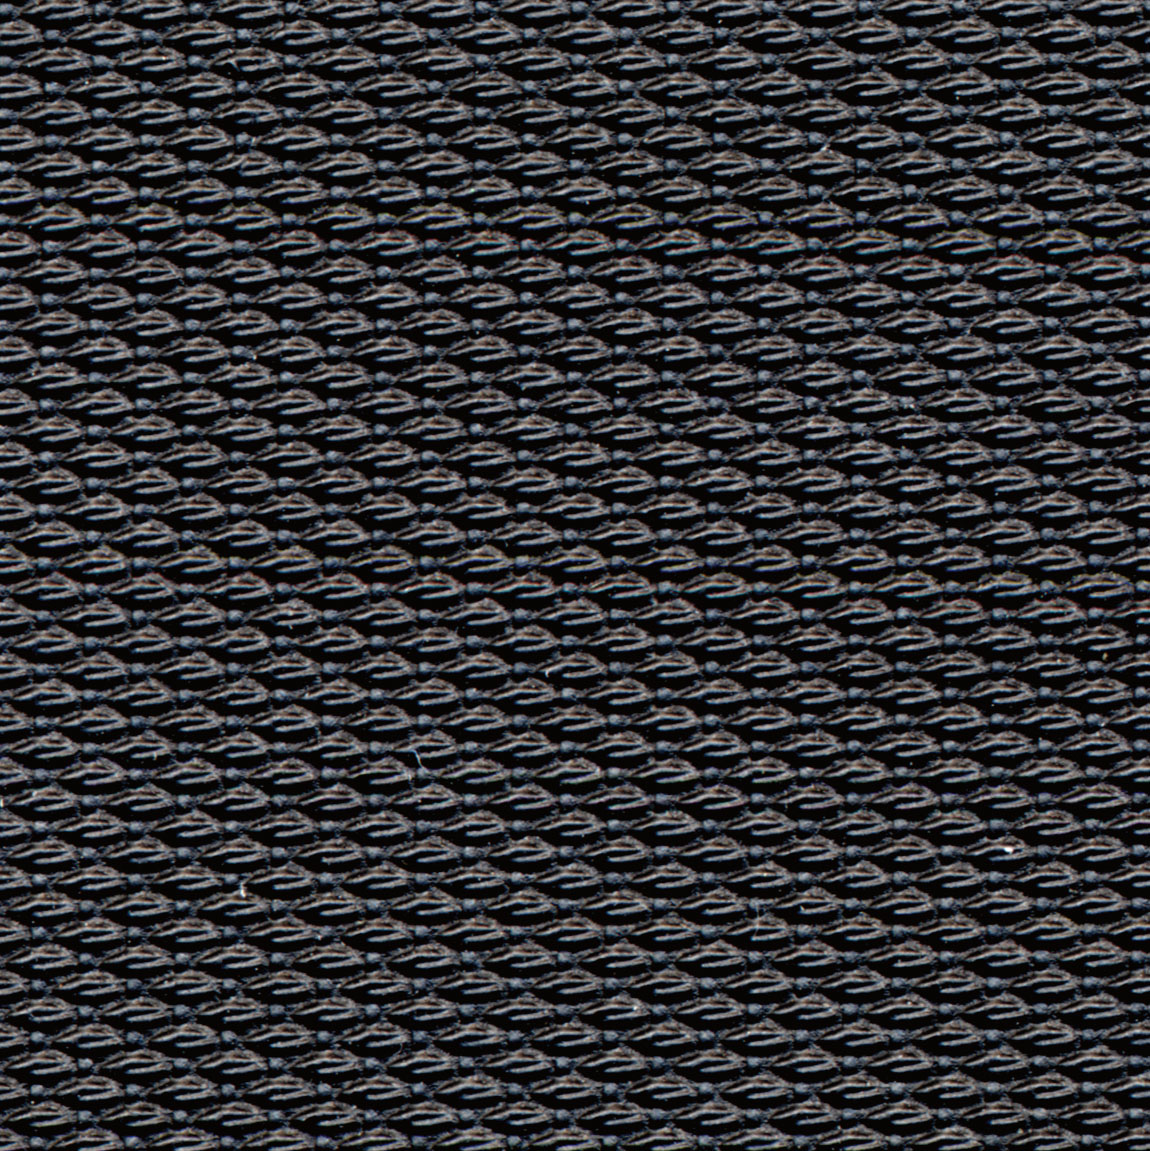 Rubber Texture Background